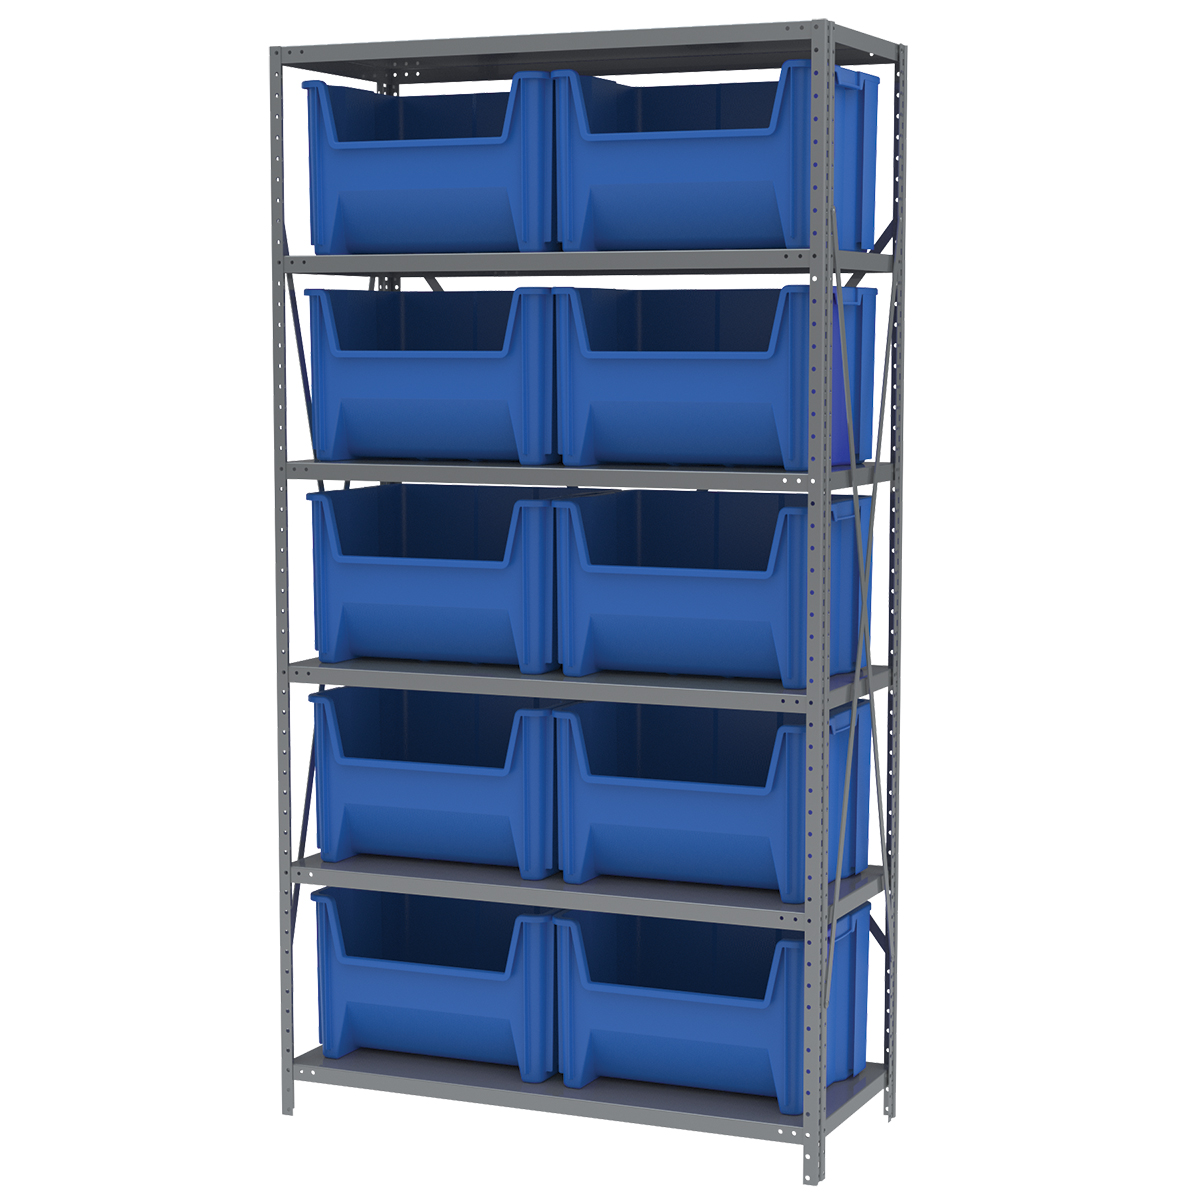 Steel Shelving Kit, 18x42x79, 10 Bins, Gray/Blue.  This item sold in carton quantities of 1.